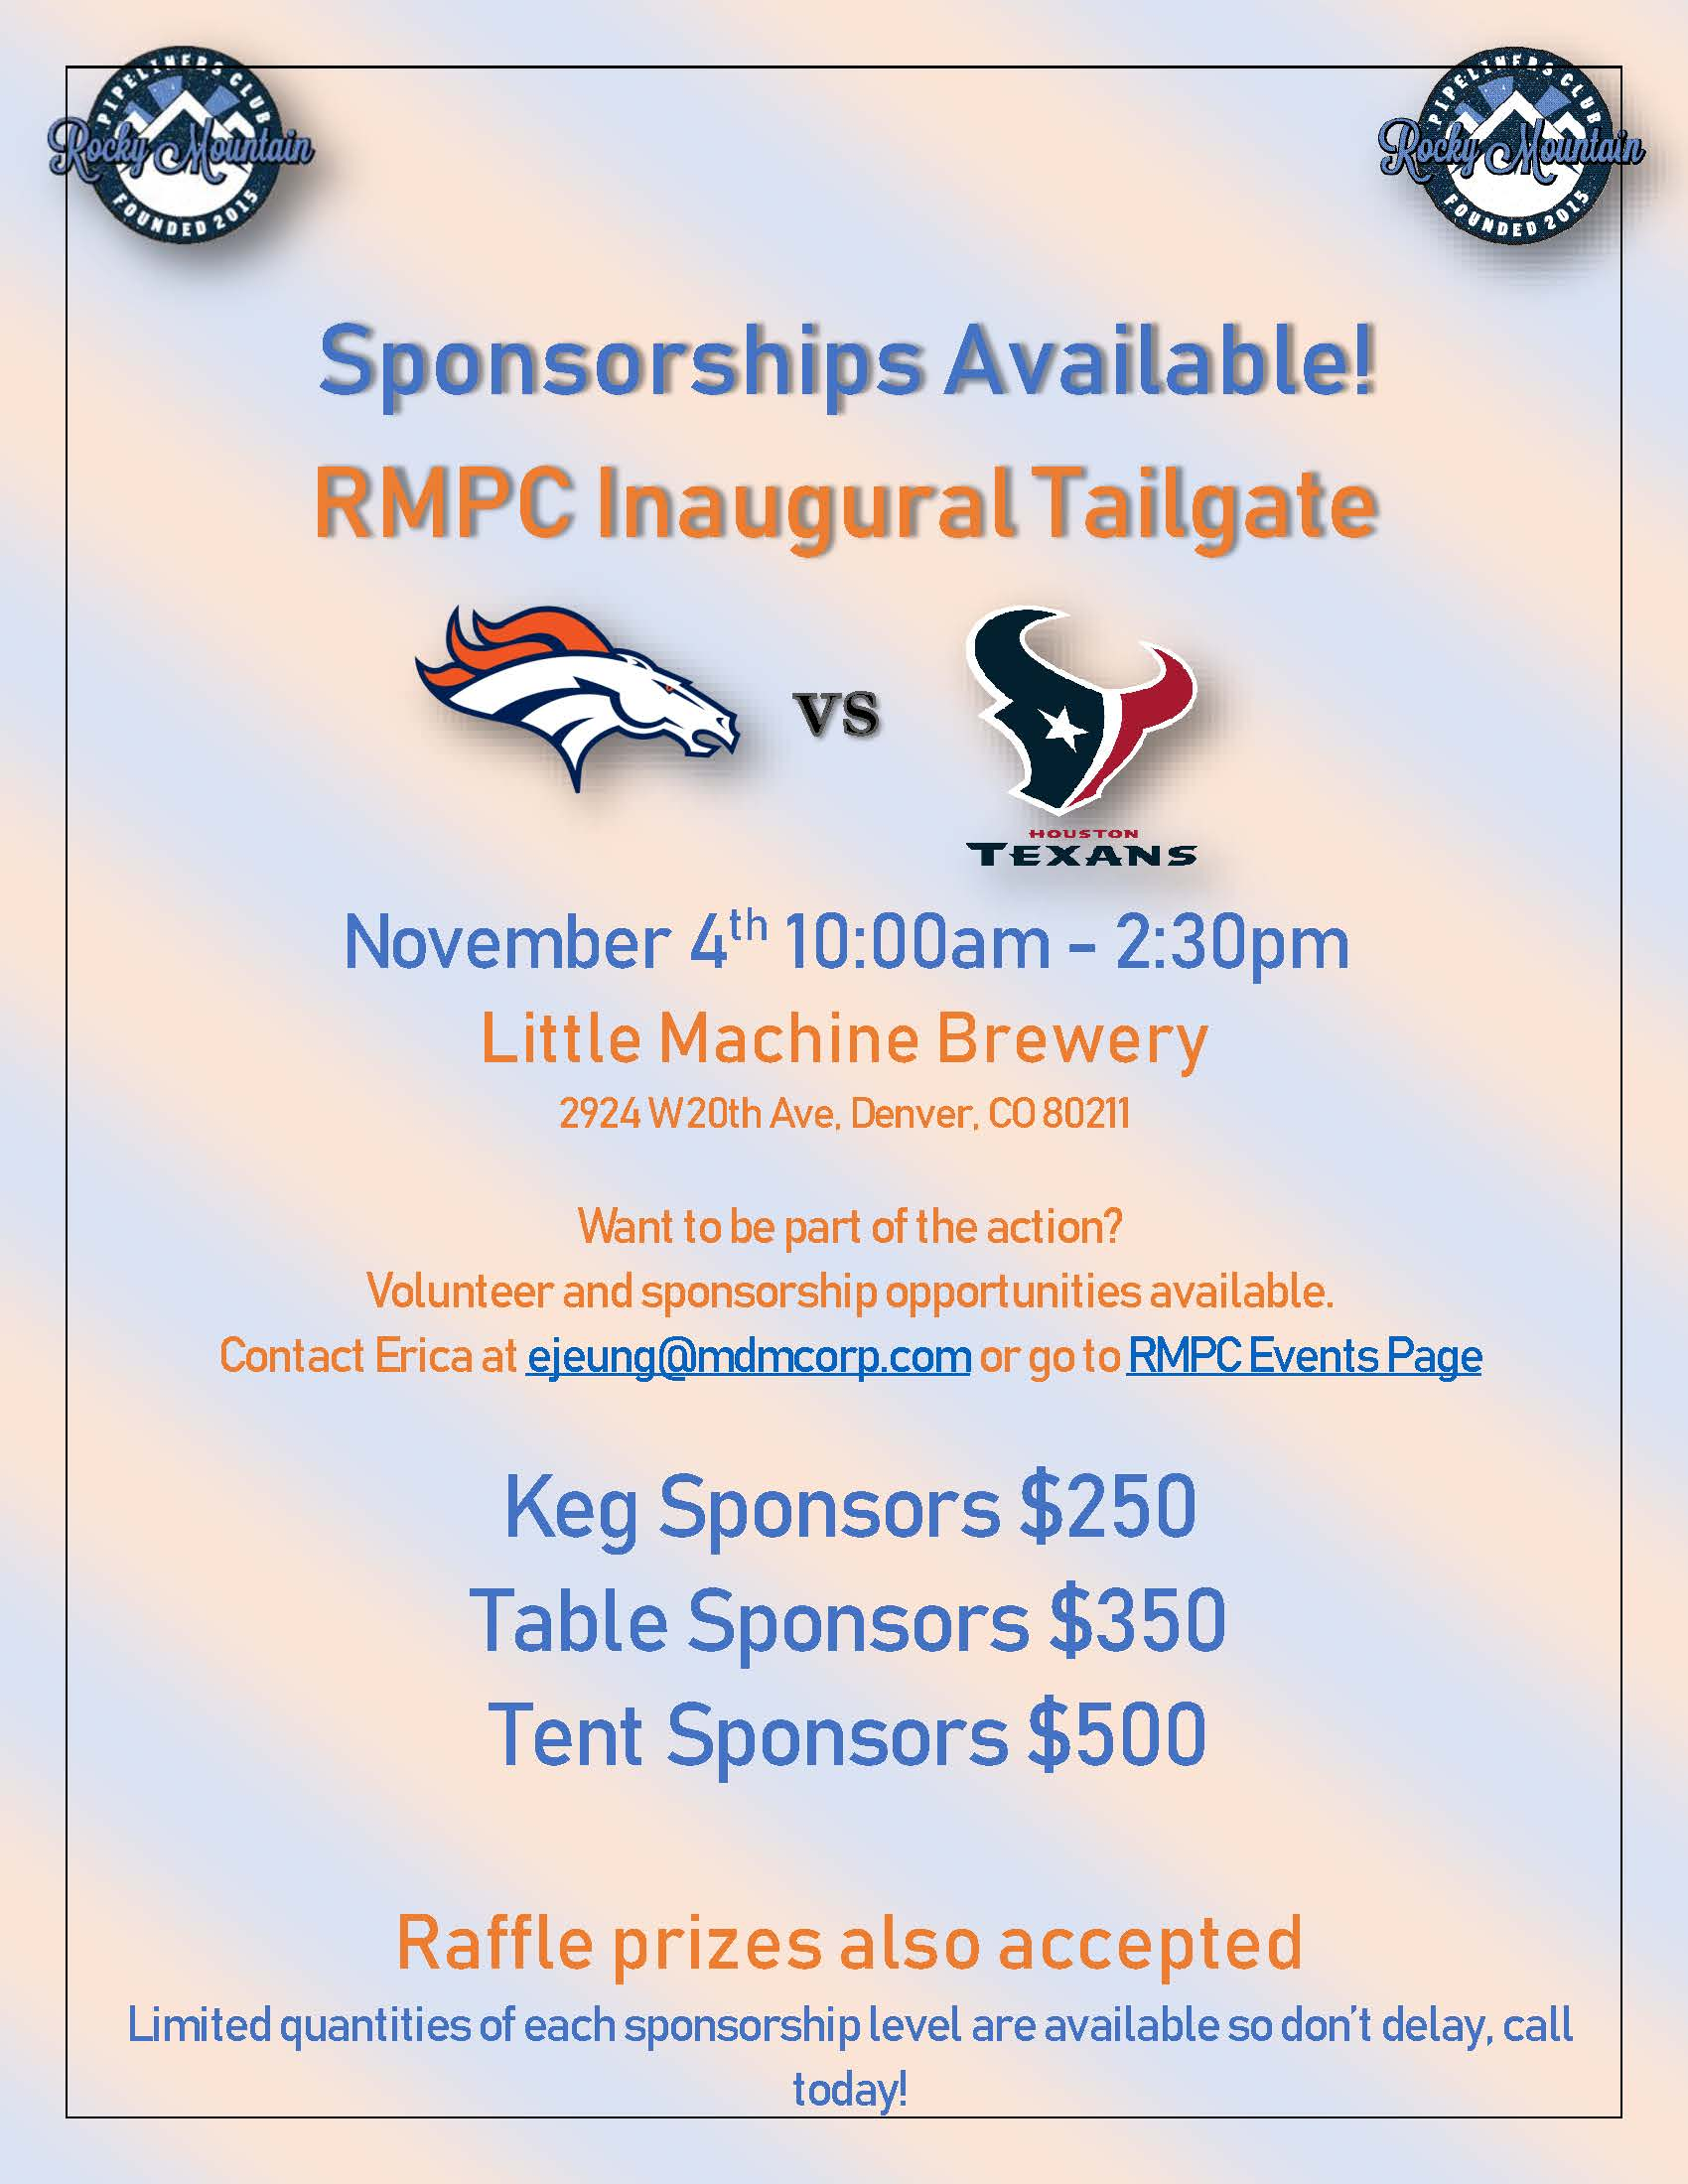 RMPC Tailgate Flyer6v1_Page_2.jpg